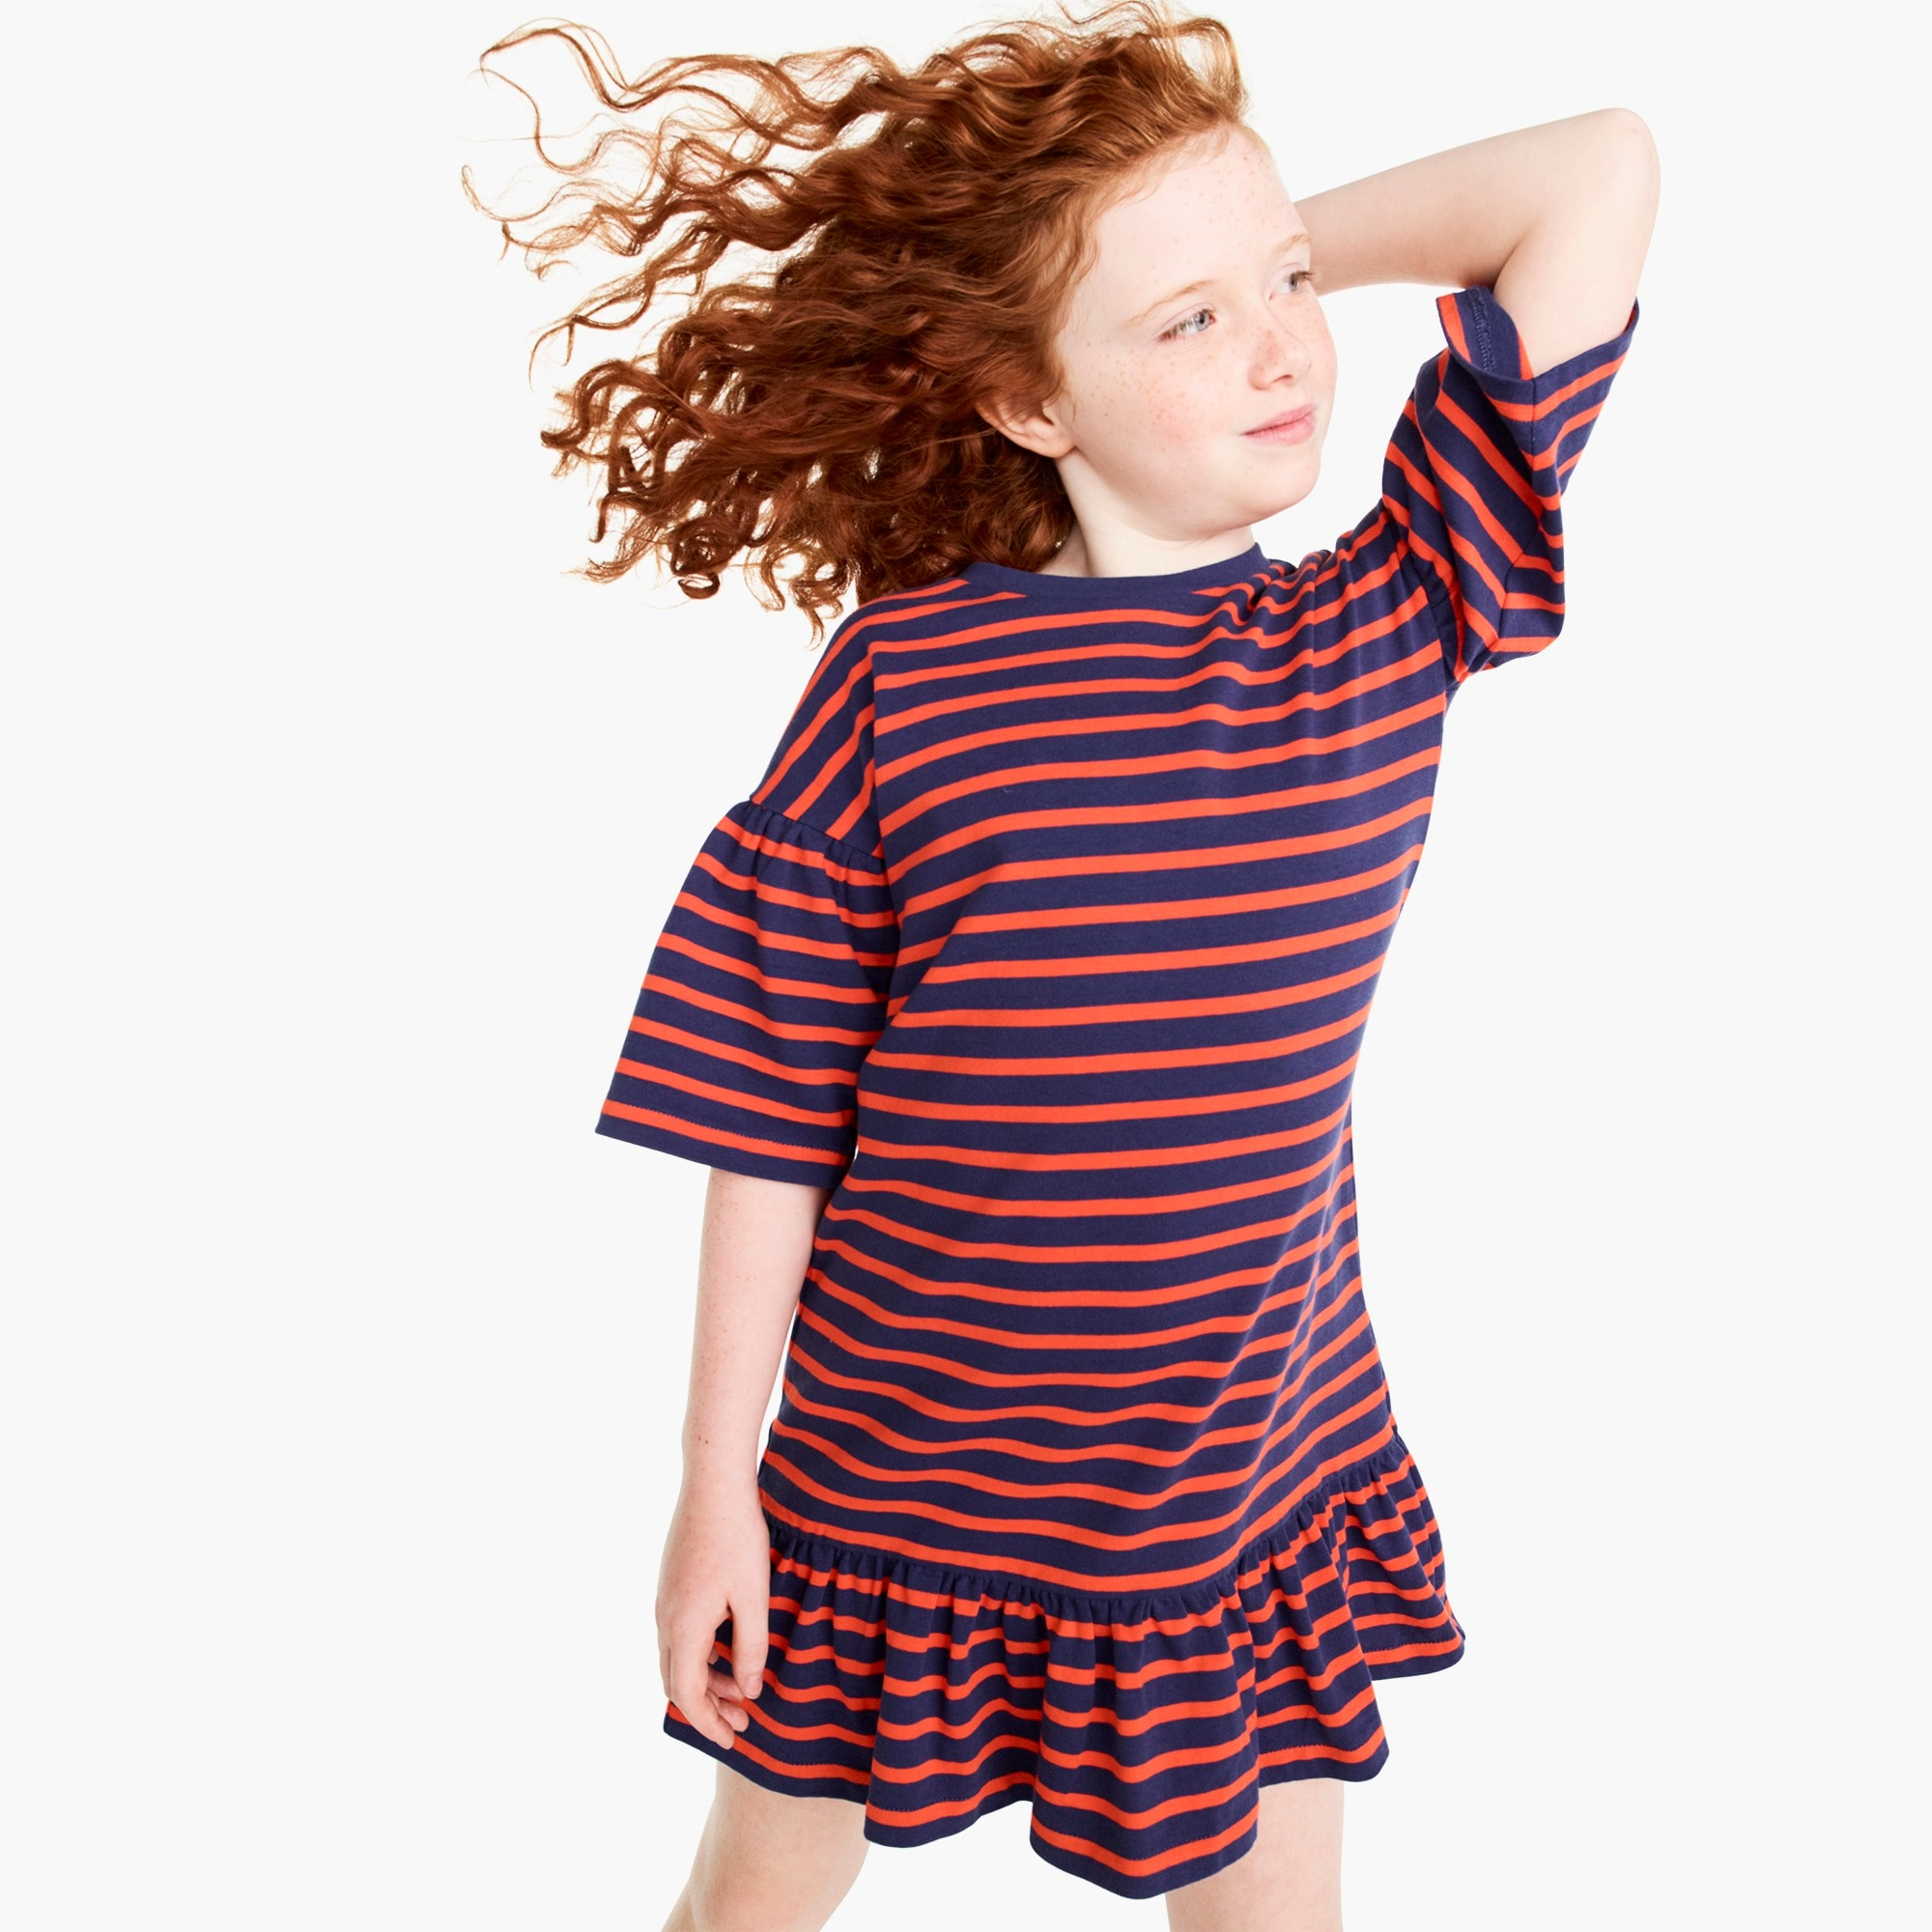 mixedproducts Girls' drop-waist dress in stripes